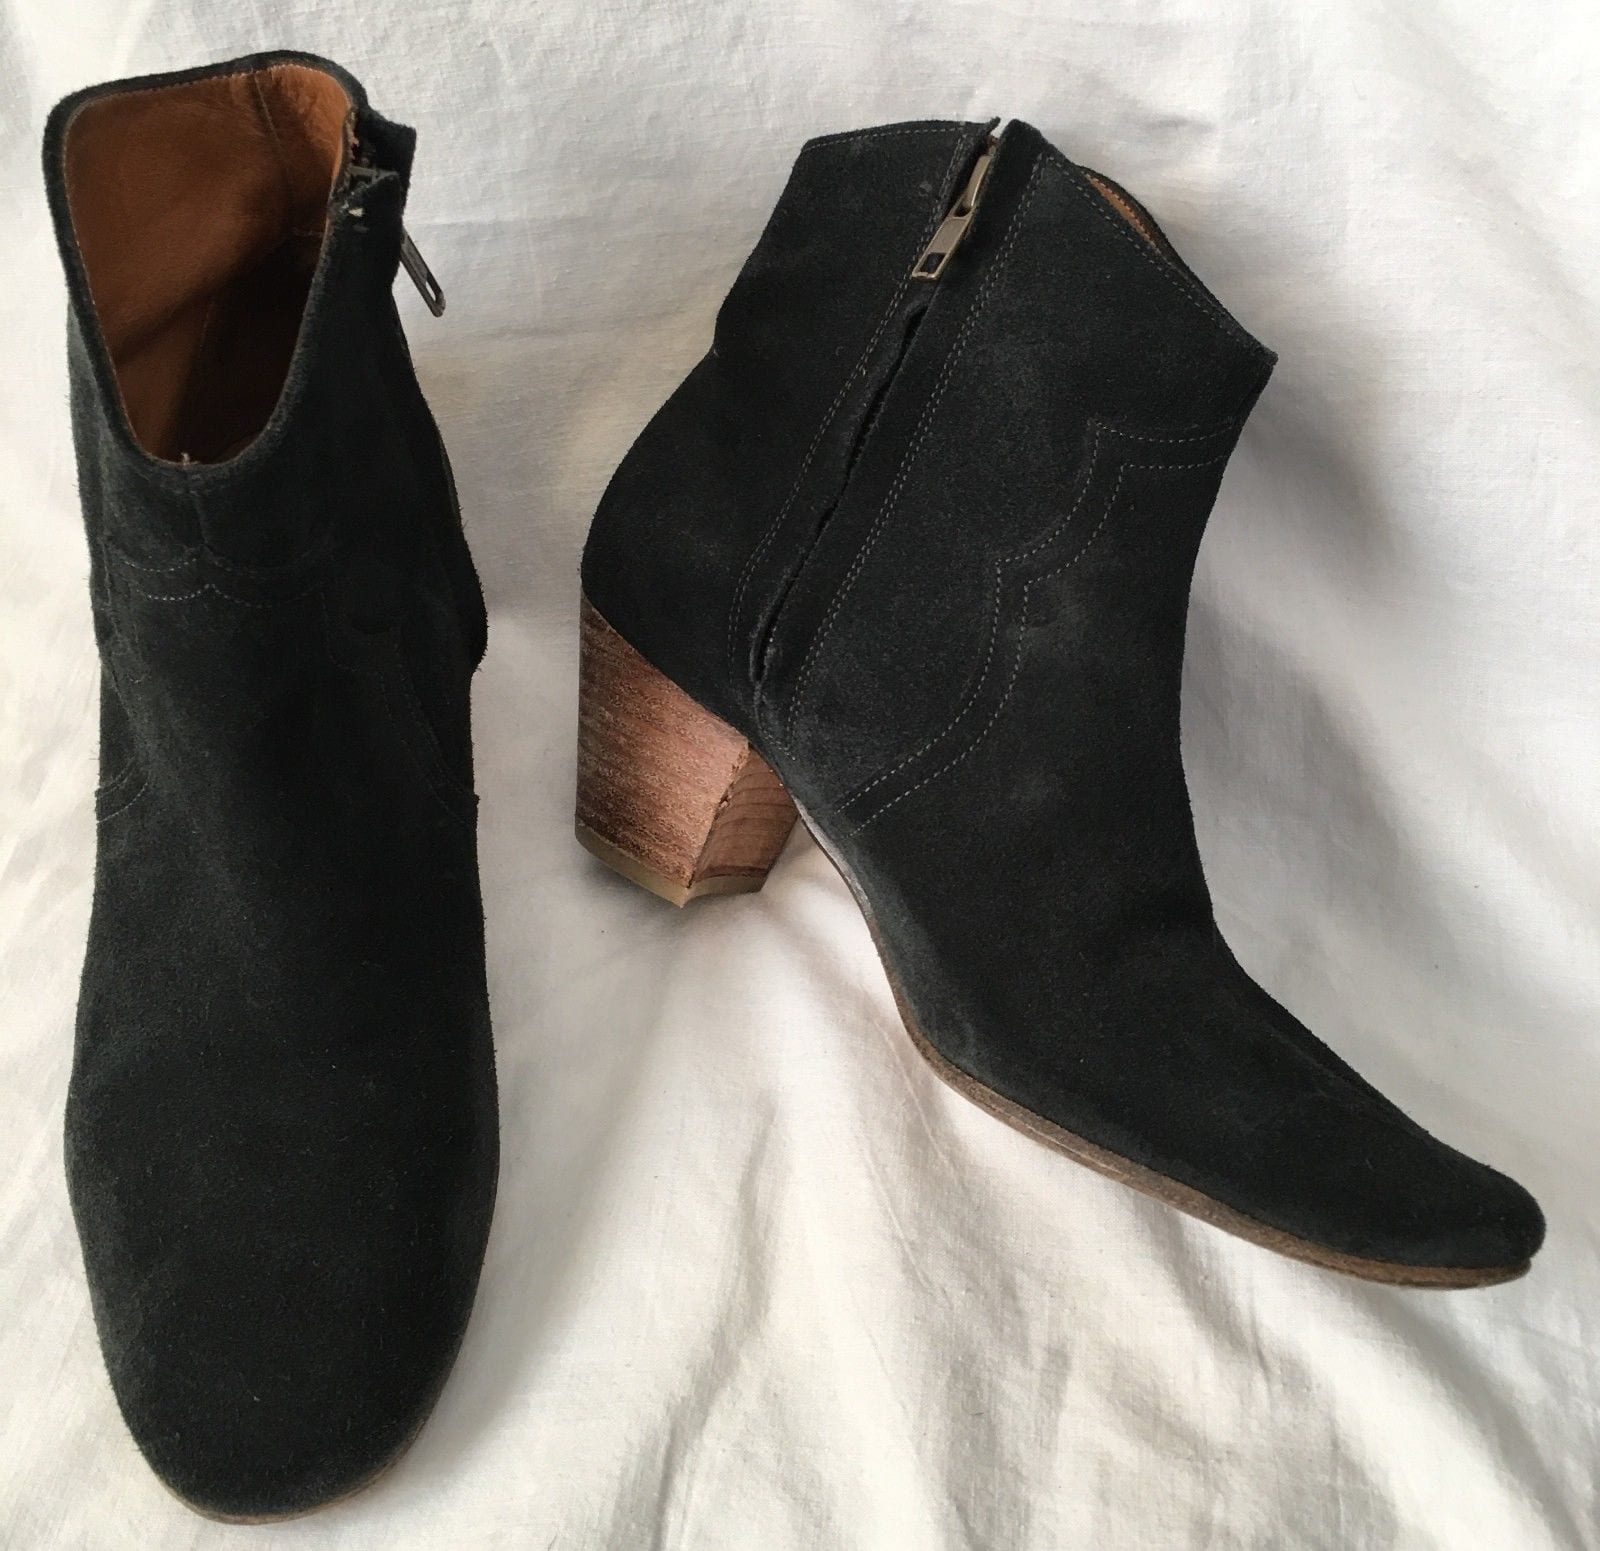 black-suede-booties-for-country-concert Country Concert Outfits For Women - 20 Styles To Try